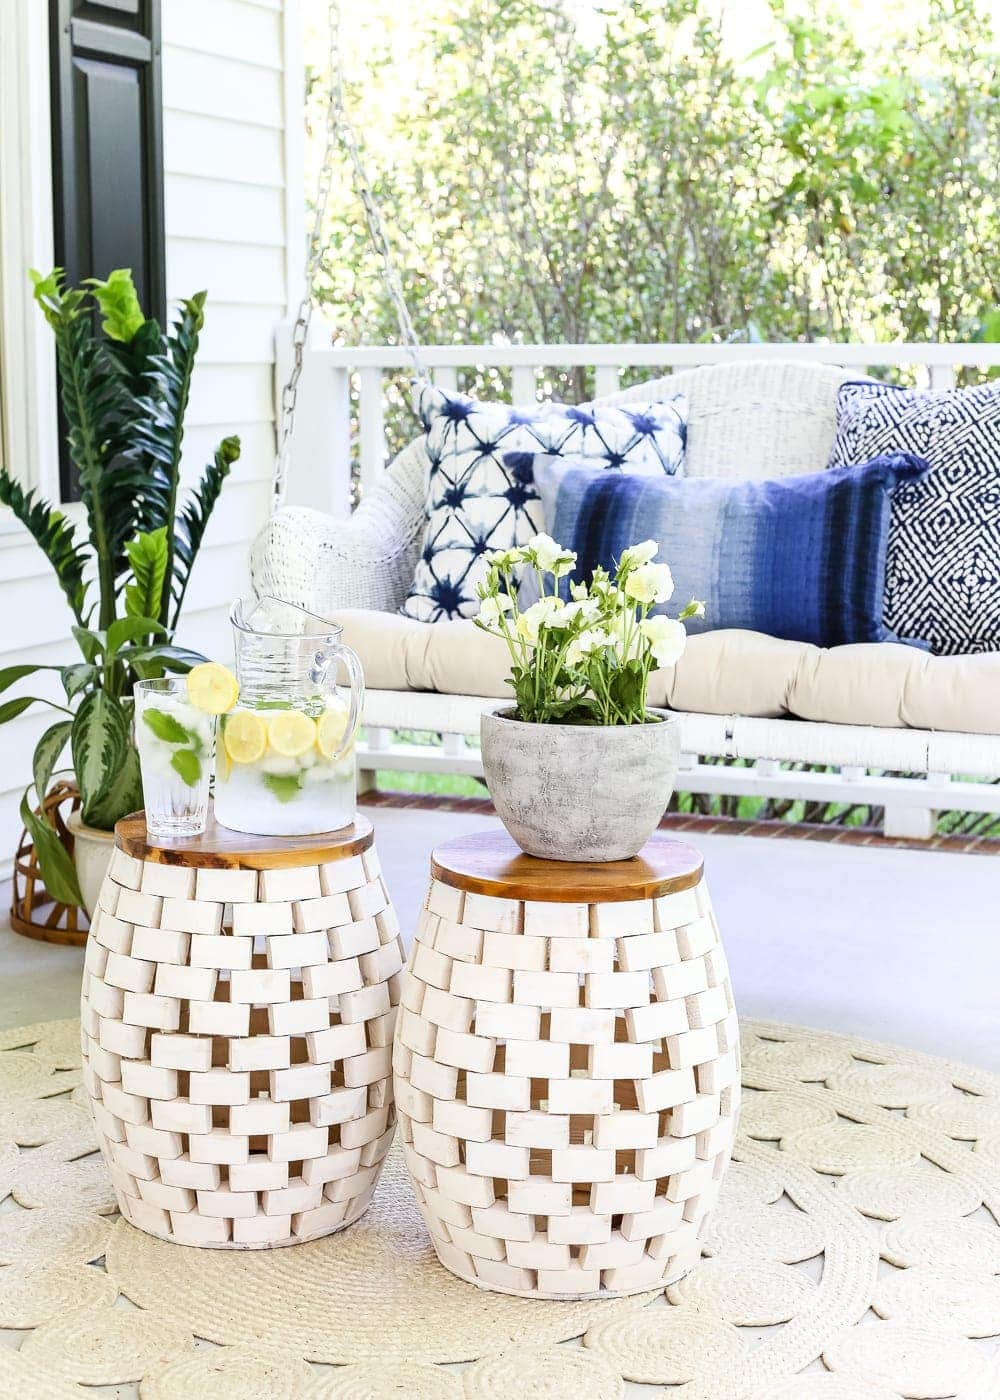 The Secret to Arranging a Versatile Outdoor Space | blesserhouse.com - 1 trick for arranging a versatile outdoor space to get the most function out of a small porch, plus decorating ideas to make it inviting with TJ Maxx. #sponsored